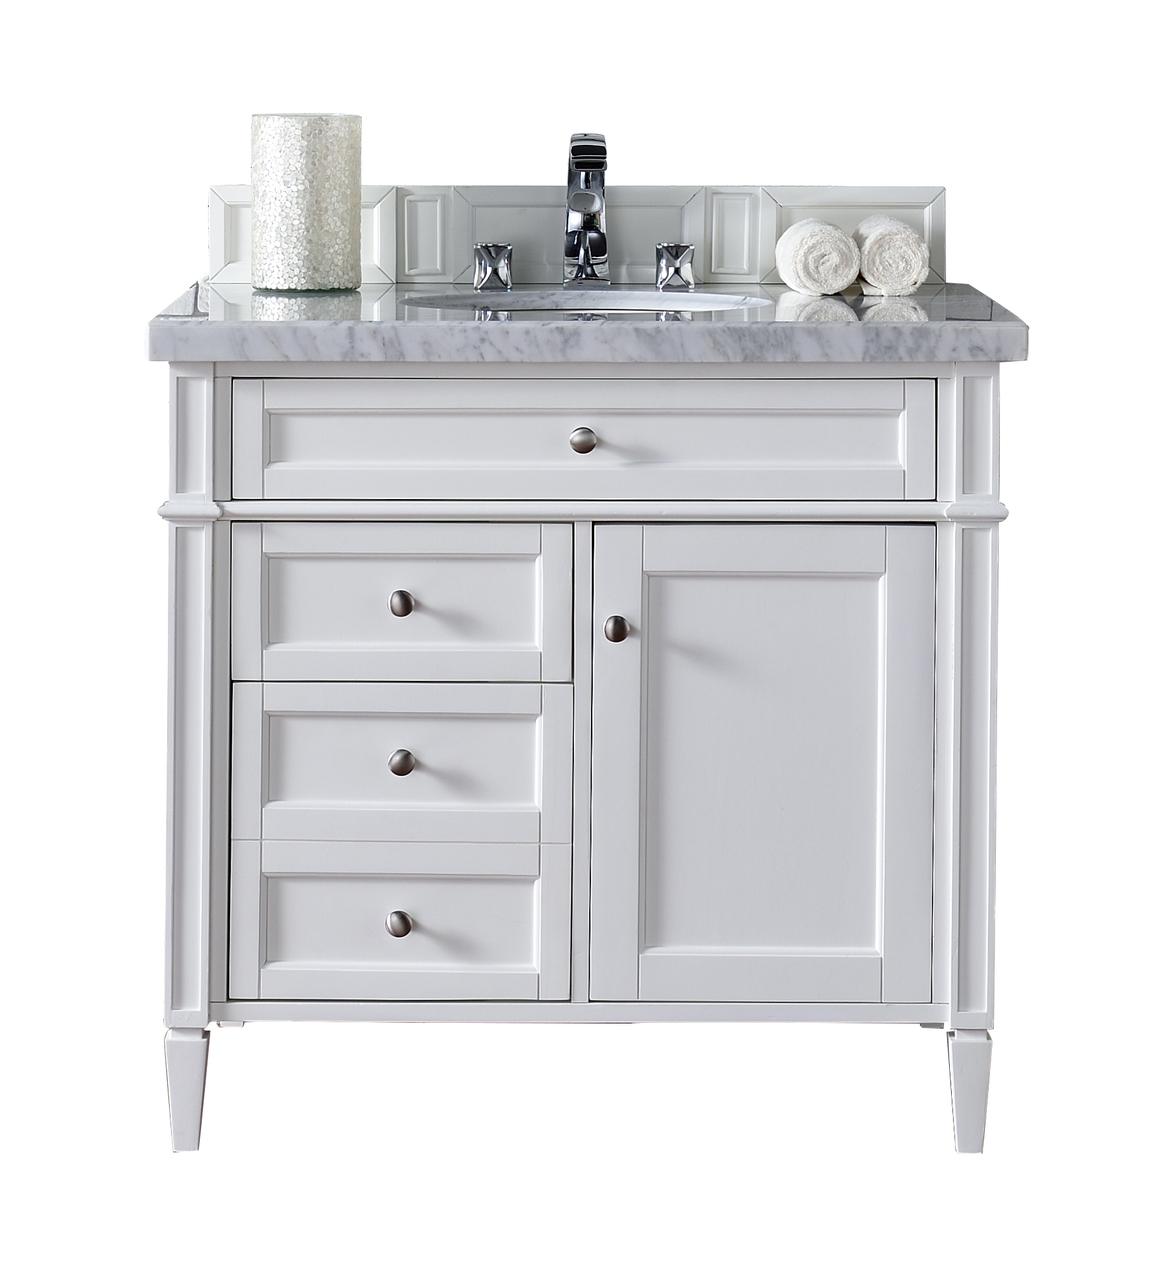 30 Inch Bathroom Vanity Cabinet White contemporary 36 inch single bathroom vanity white finish, no top